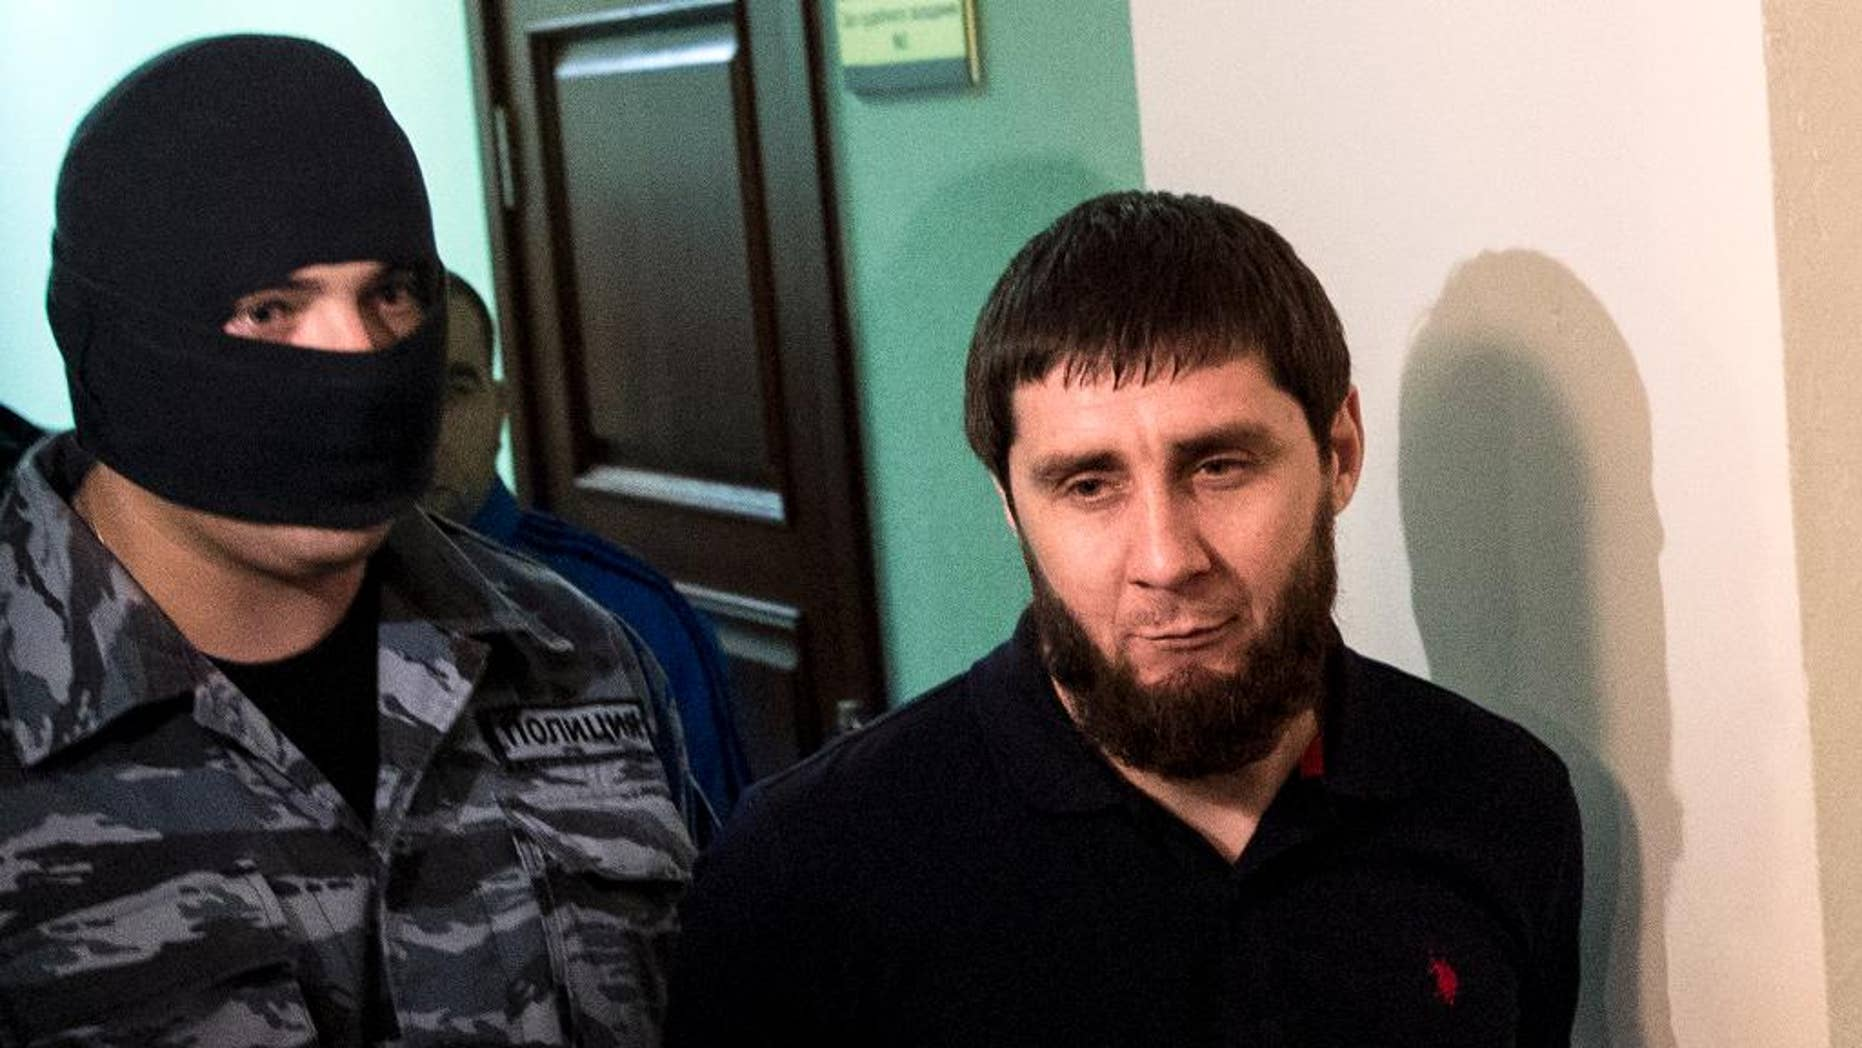 A police officer, left, escorts Zaur Dadaev, one of five suspects held in the killing of Russian opposition politician Boris Nemtsov, is escorted in a court in Moscow, Russia, Monday, Oct. 3, 2016. A Moscow military court is beginning to hear the case of five people accused of involvement in the killing of Nemtsov in February 2015. (AP Photo/Pavel Golovkin)